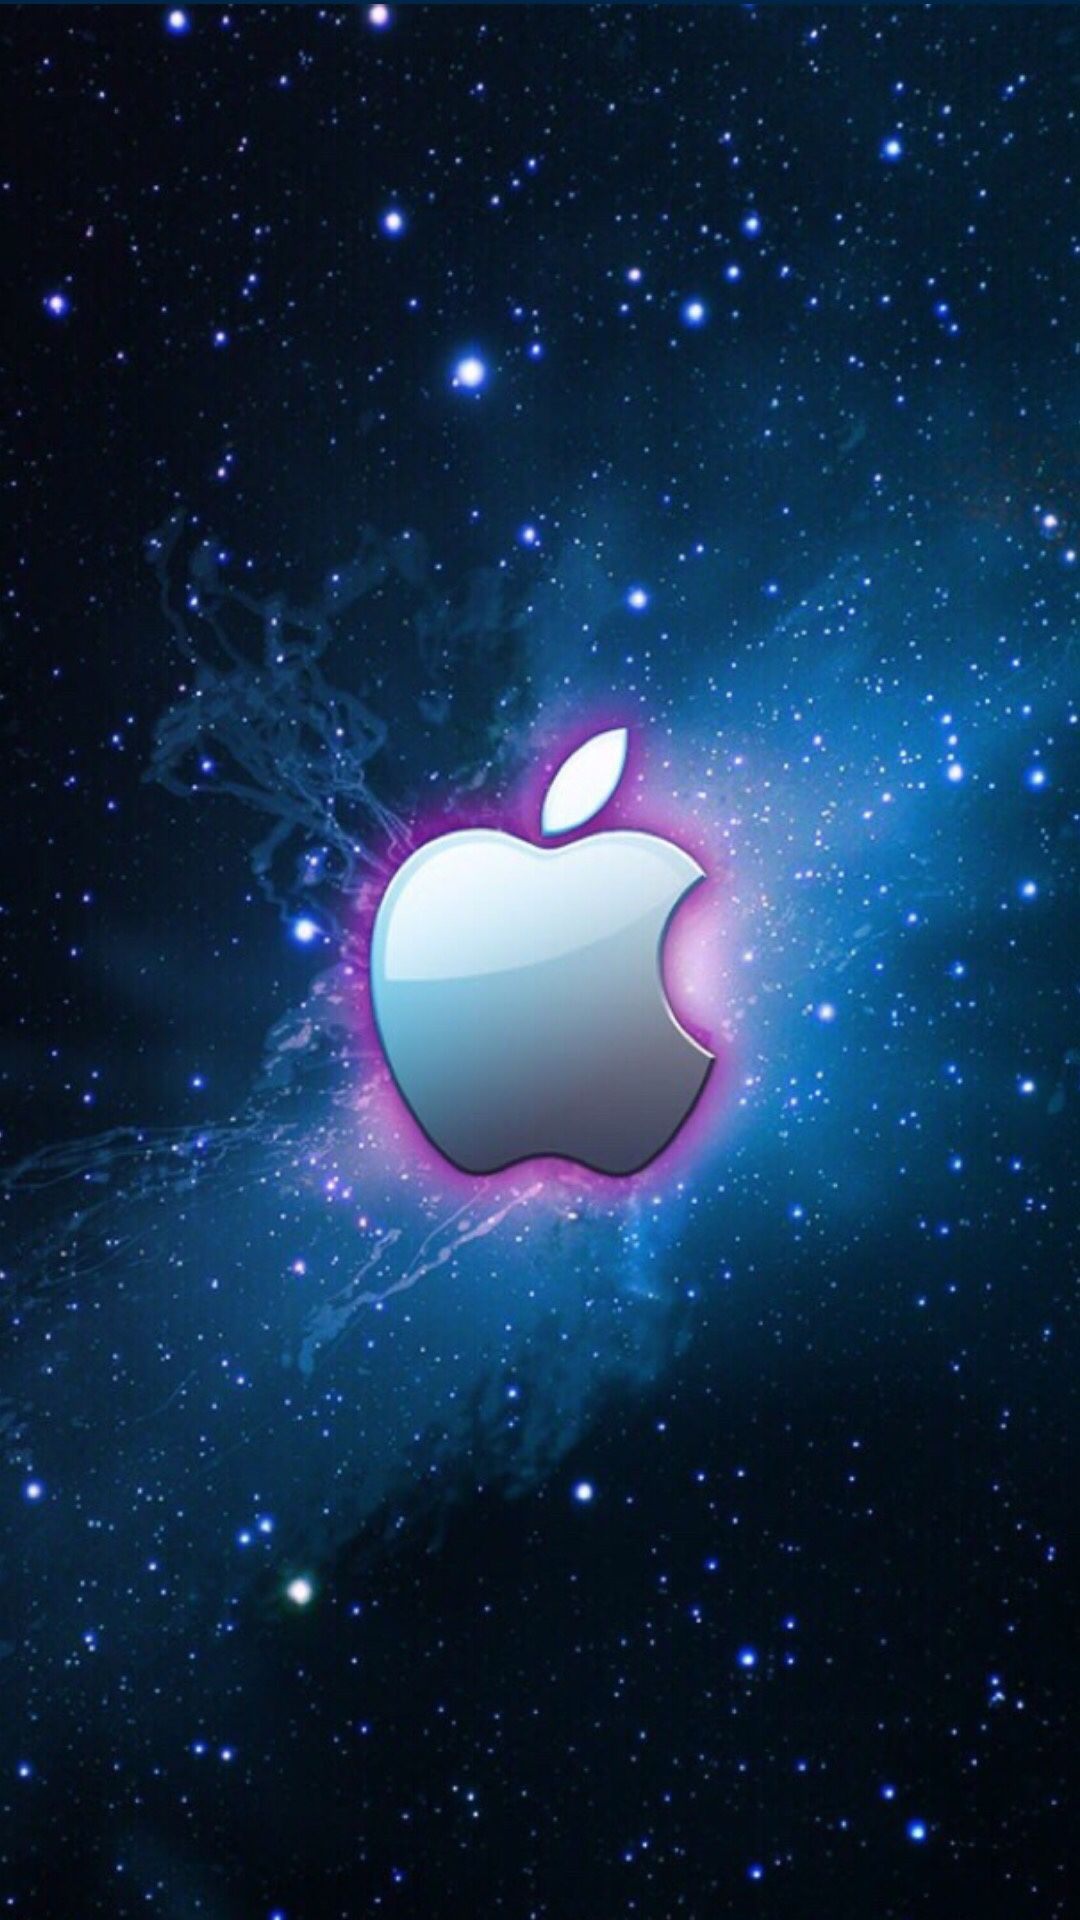 Apple Wallpaper..post your creative Apple wallpaper Page